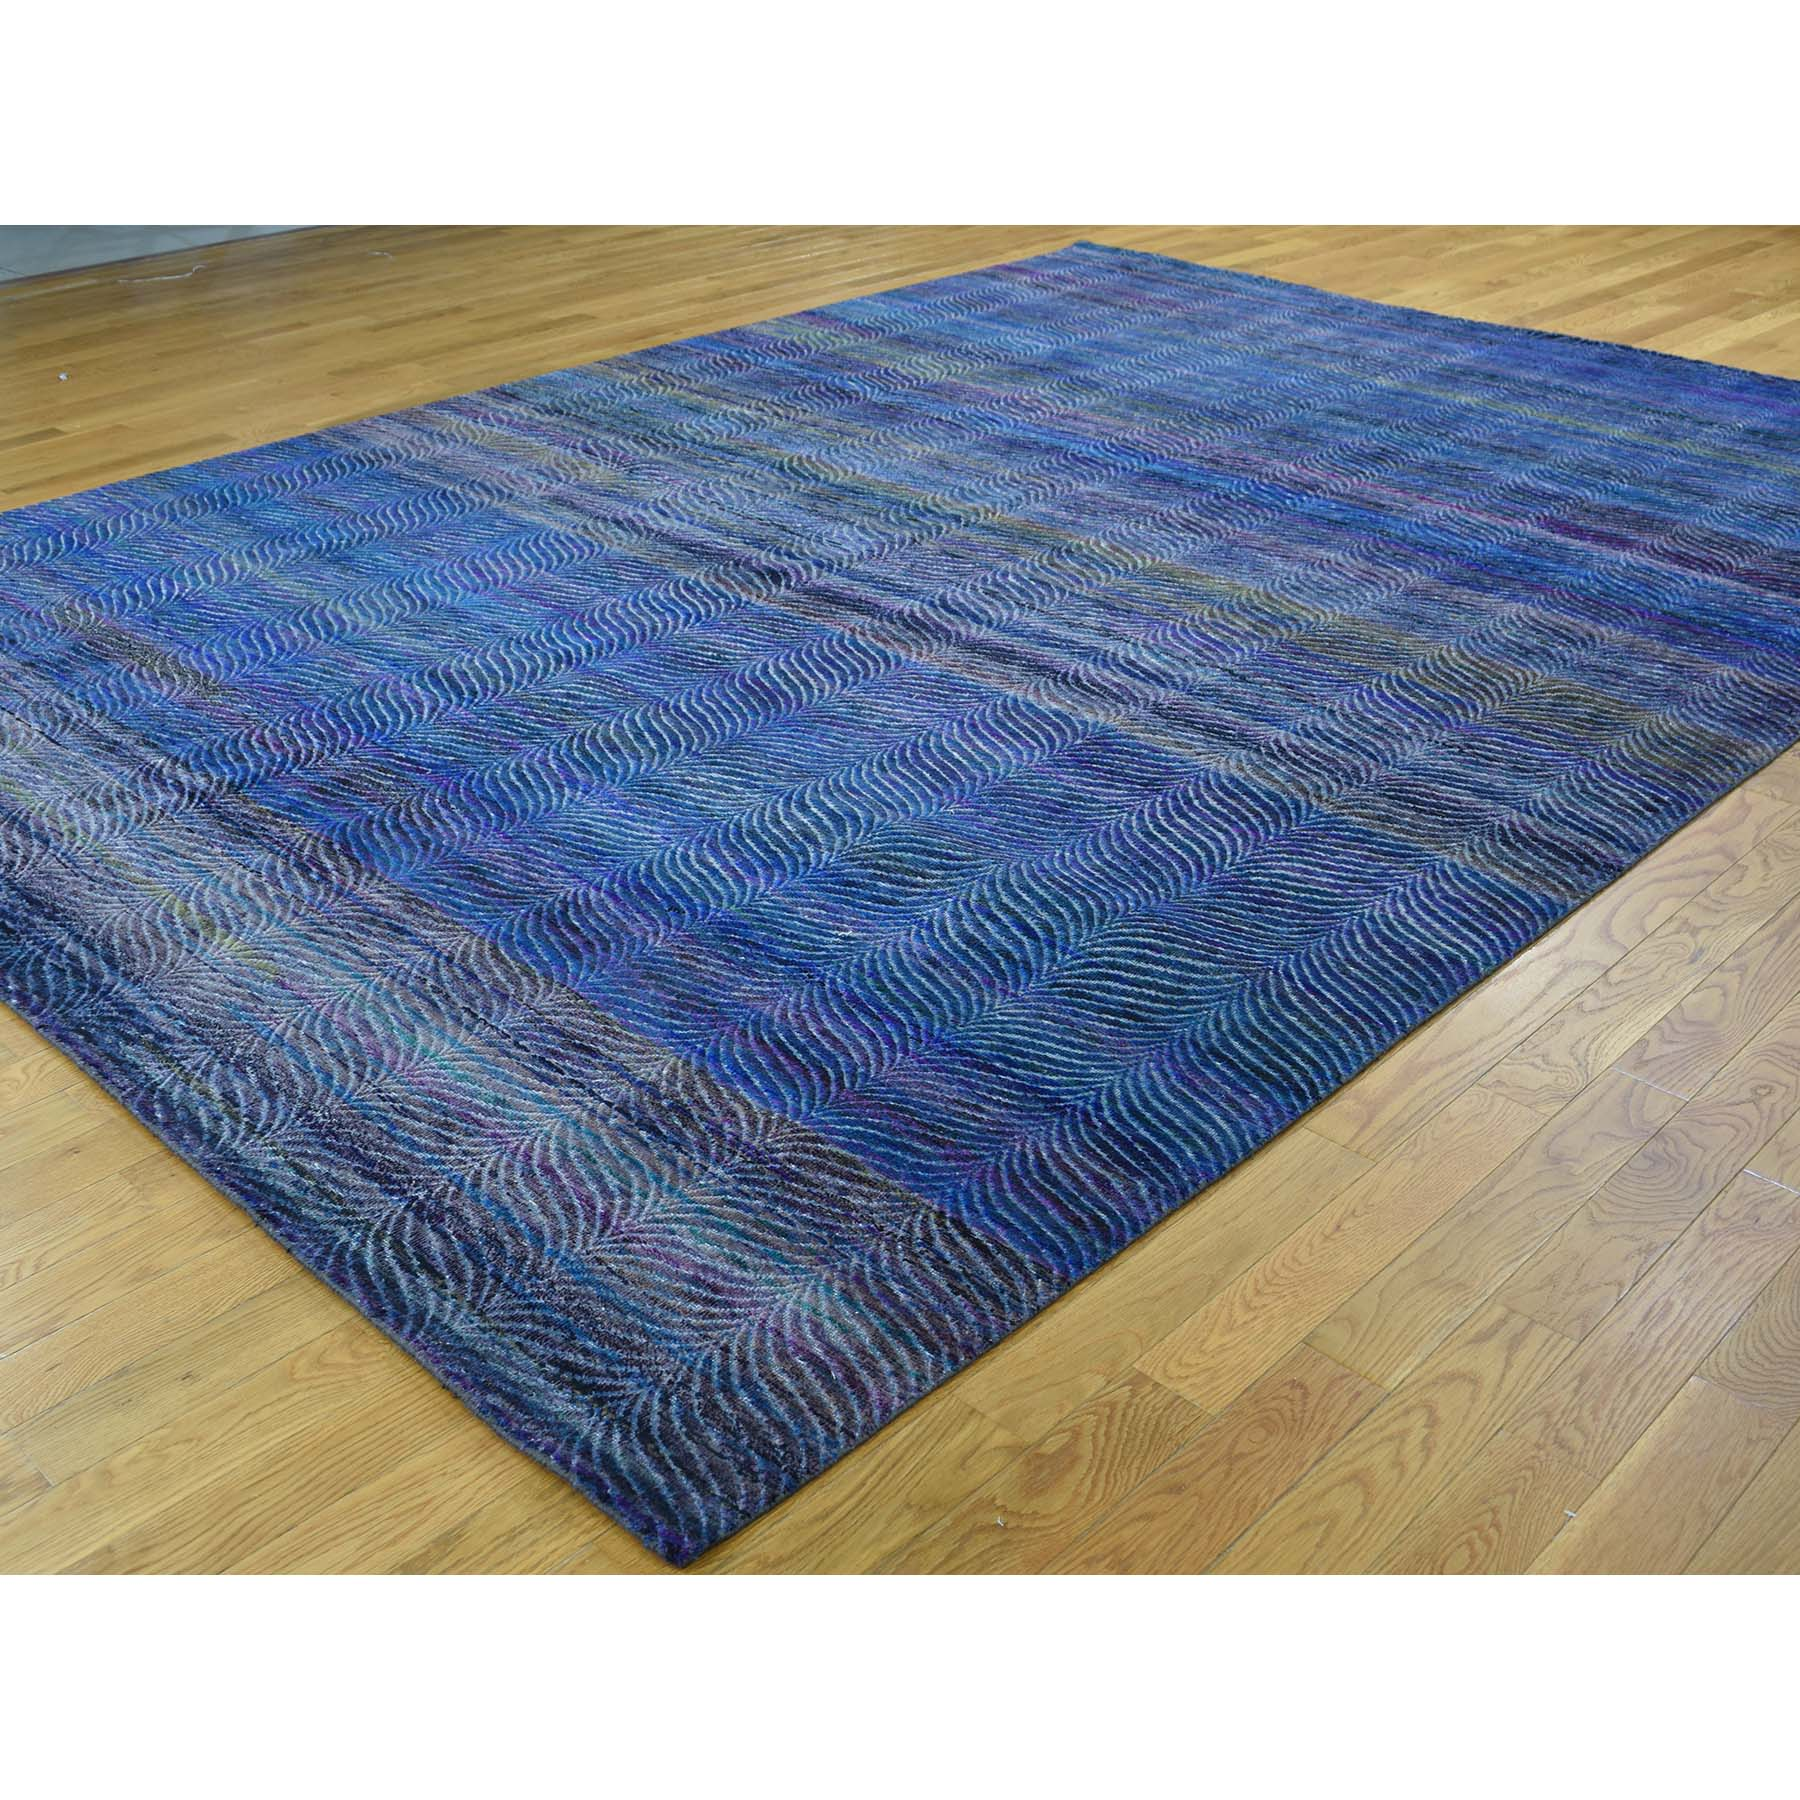 "Handmade Modern and Contemporary Rectangle Rug > Design# SH36425 > Size: 9'-0"" x 12'-2"" [ONLINE ONLY]"